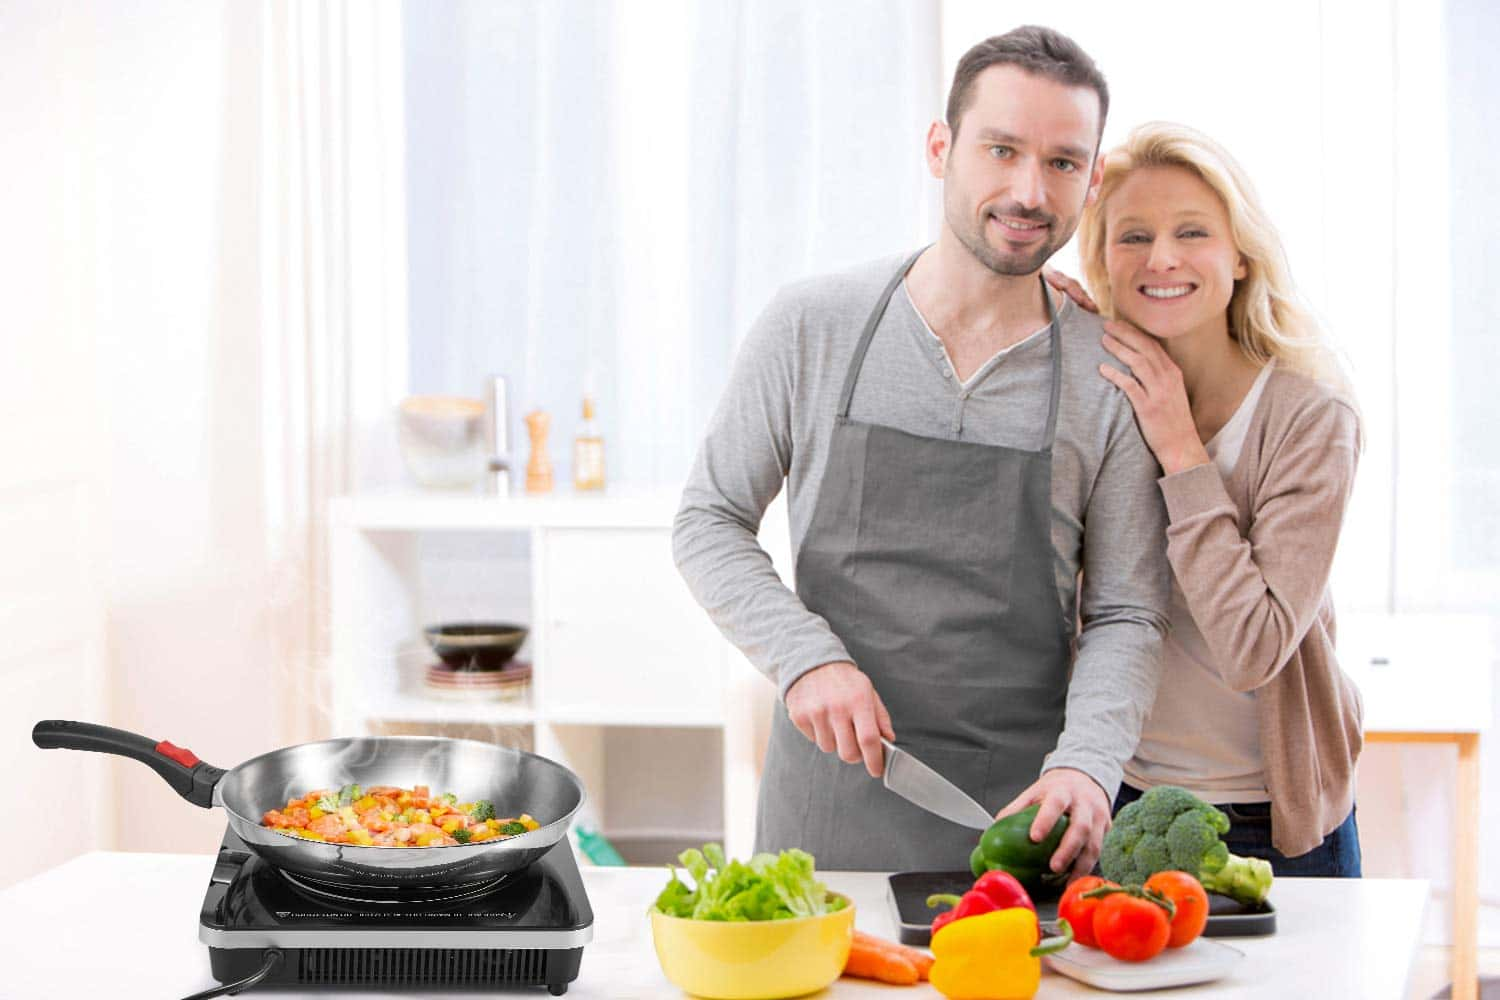 Top 10 Best Portable Induction Cooktops in 2020 Reviews | Buyer's Guide